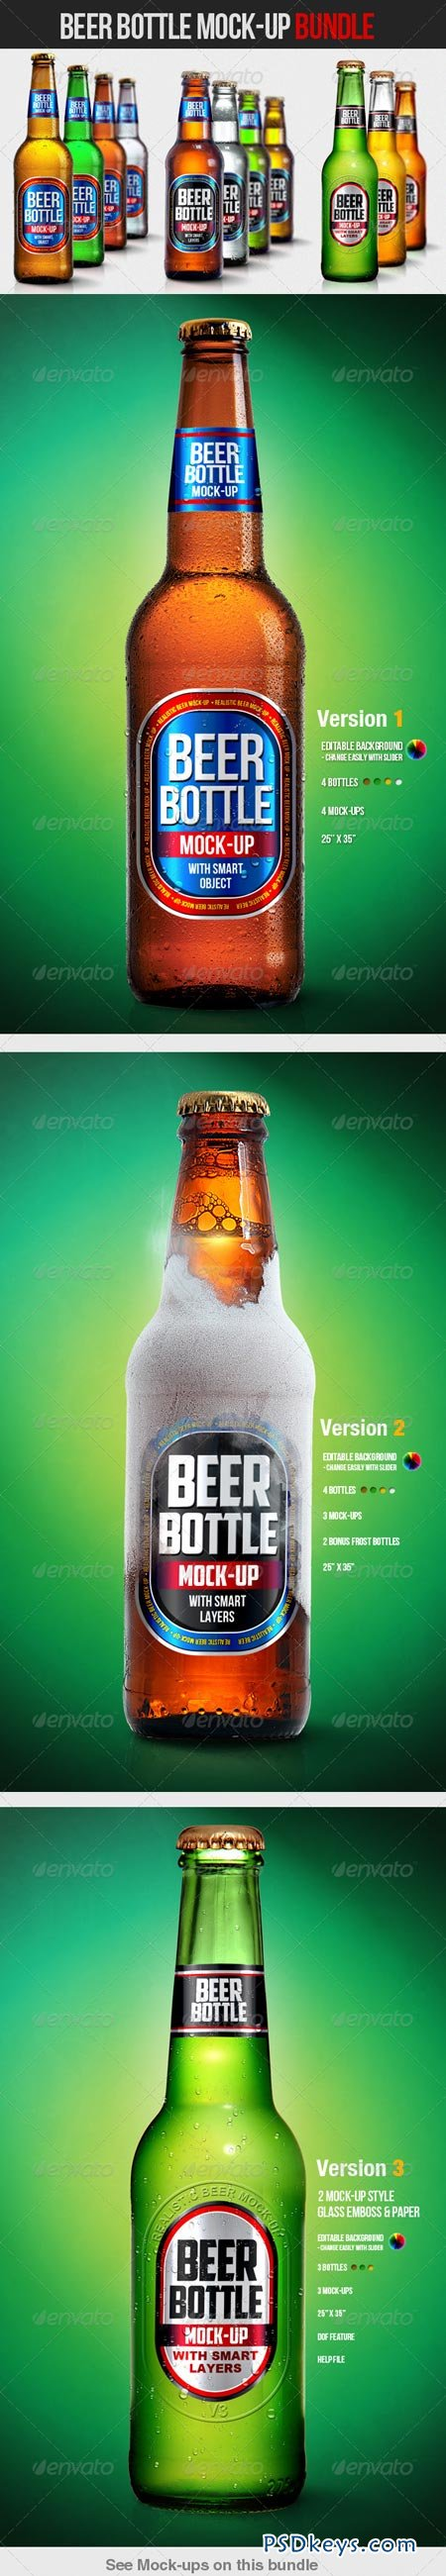 Beer Bottle Mock-Up Bundle 4629011